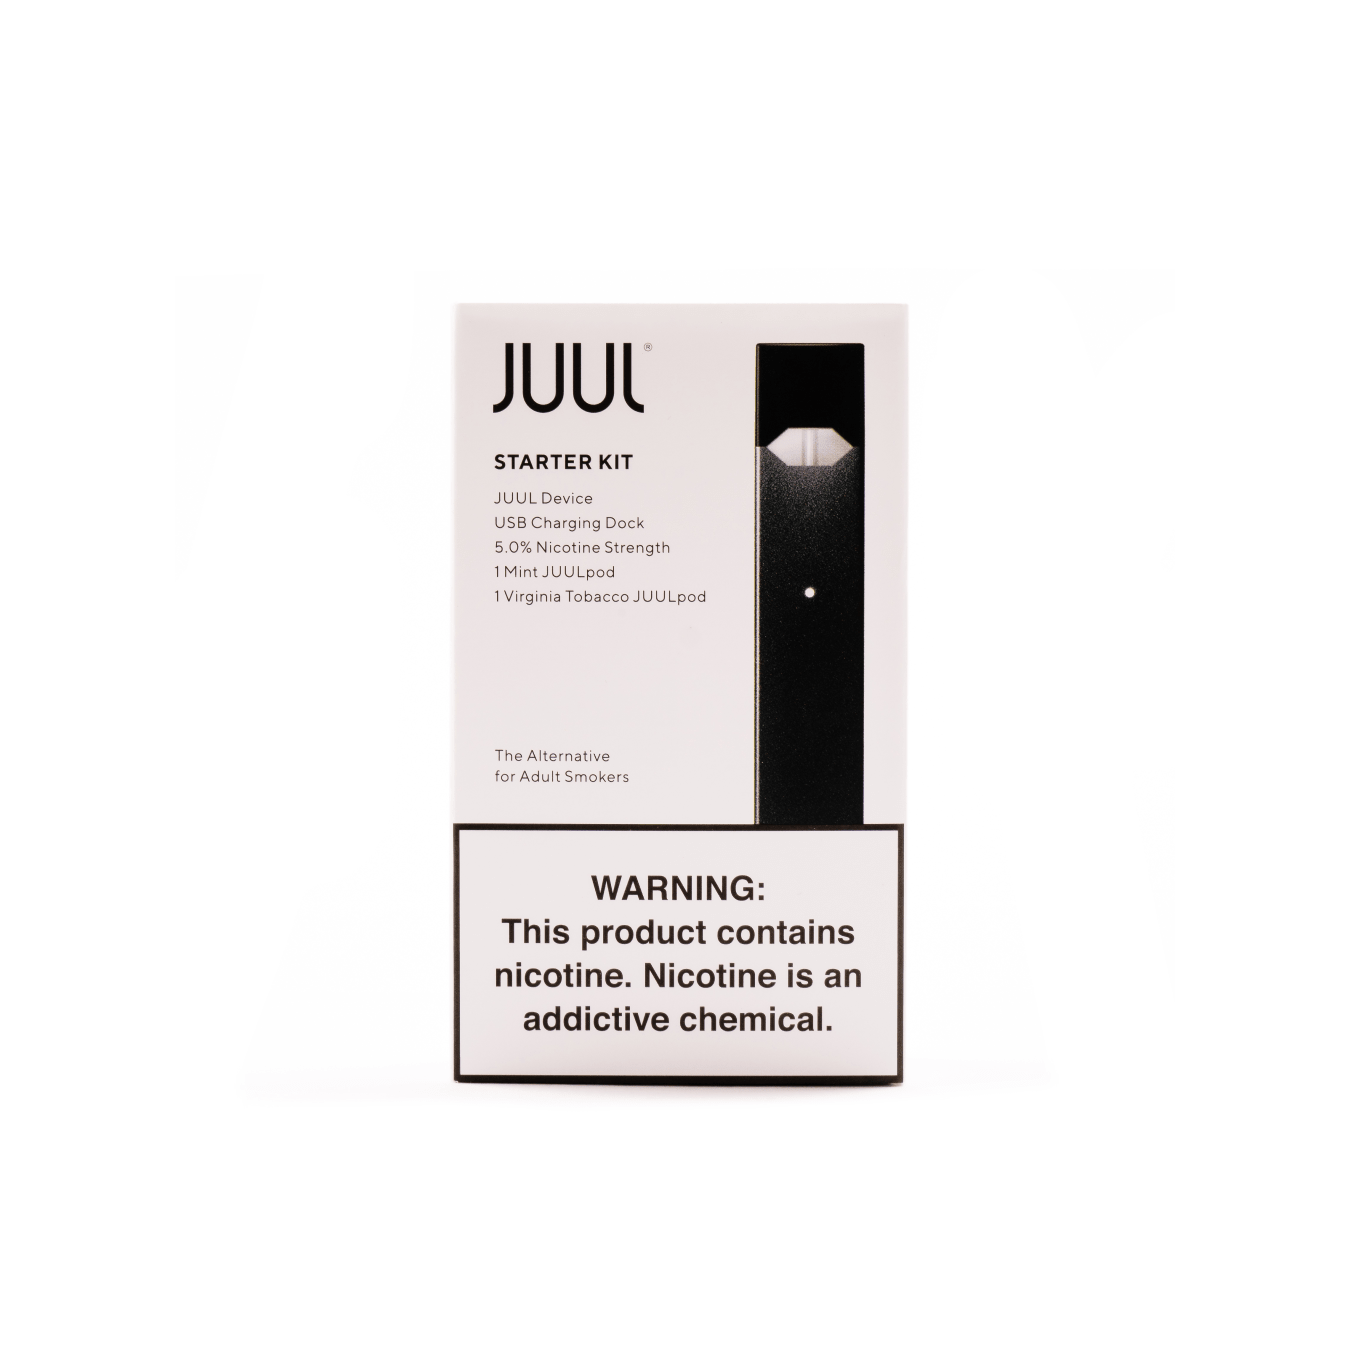 JUUL Starter Kit | Price Point NY | 2 Pod Pack | Multipack